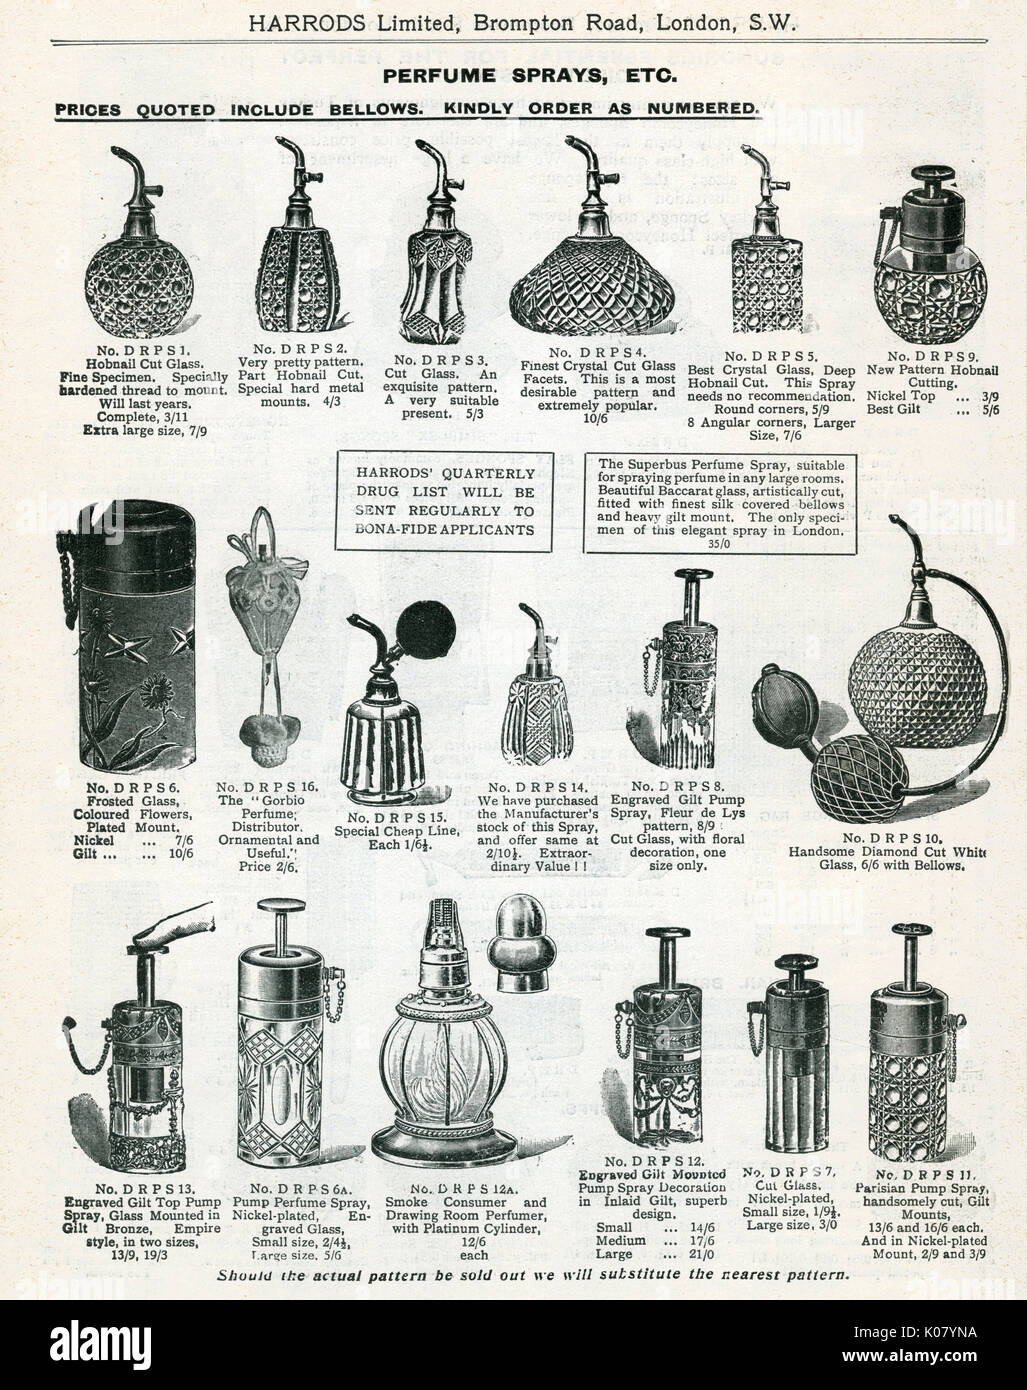 Trade catalogue for Harrord's department store, showing a page crystal cut glass and diamond cut perfume sprays bottles.     Date: 1911 - Stock Image